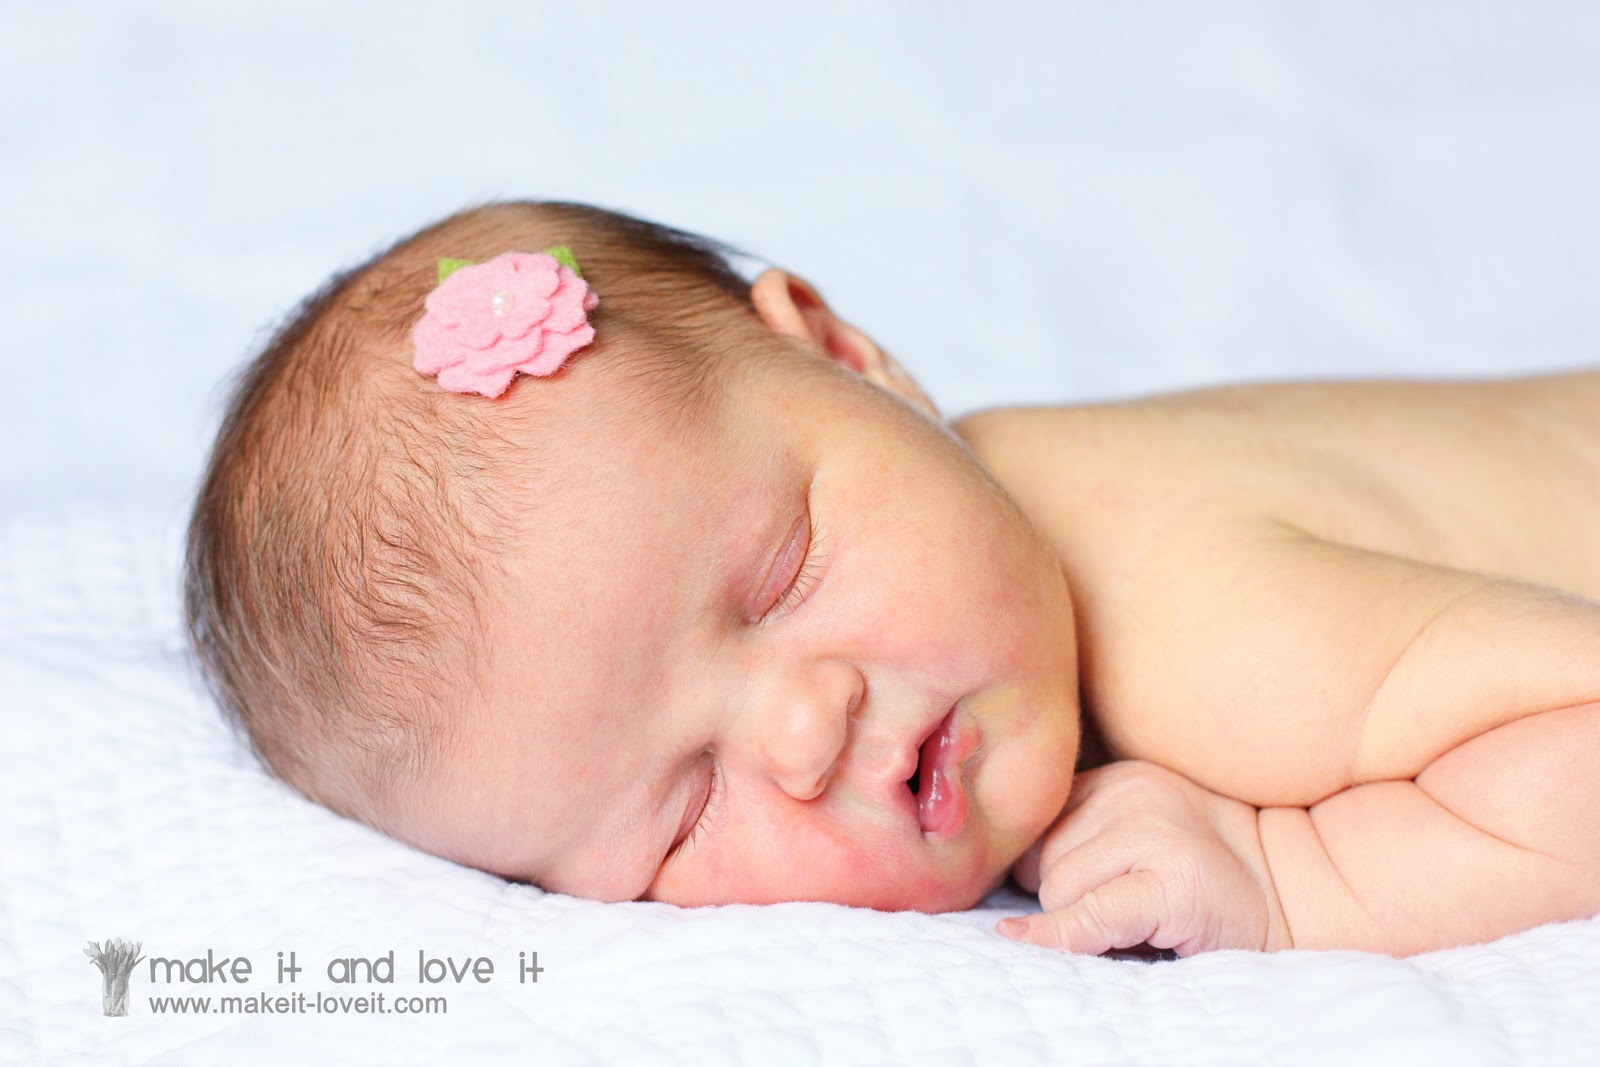 Wool Felt Hair Accessories For Baby Make It And Love It